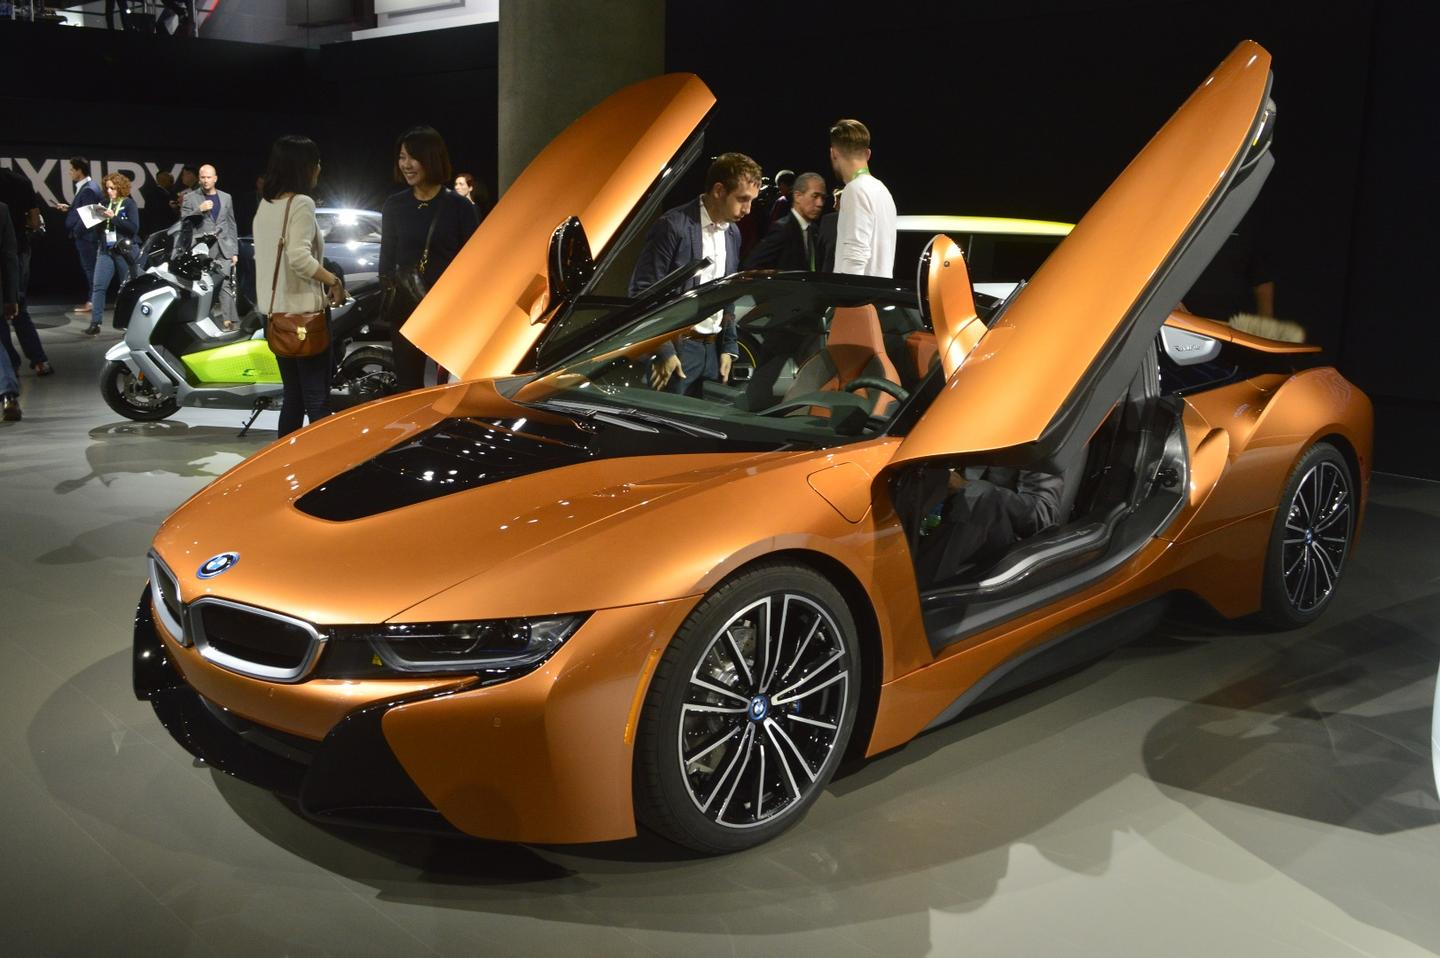 The BMW i8 began selling in 2014 as a 2+2 coupe made of carbon fiber and pure hybrid awesomeness